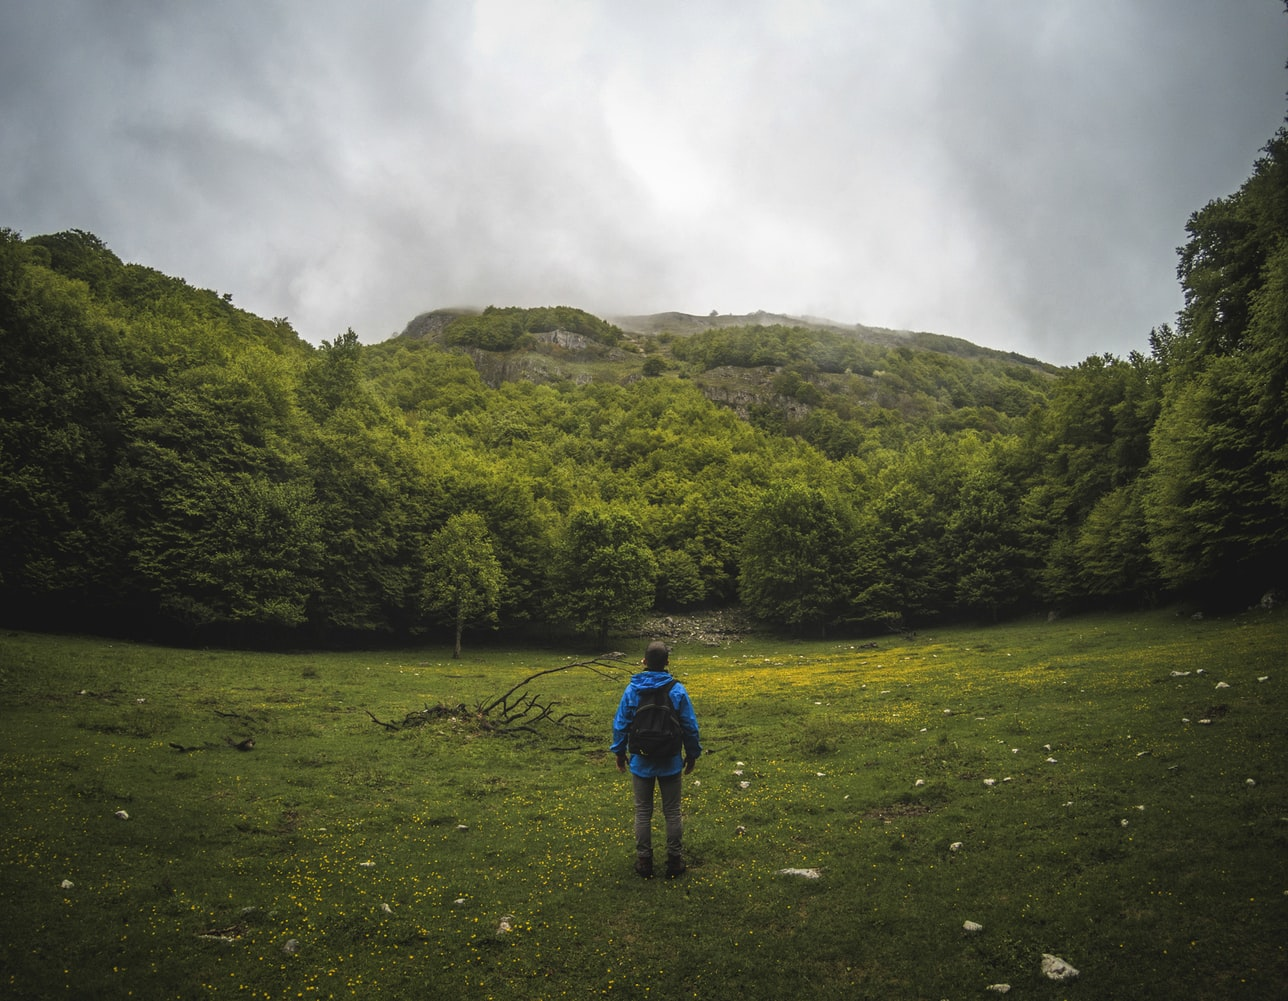 Panoramic photography of man in blue jacket with backpack standing on grass in front of trees